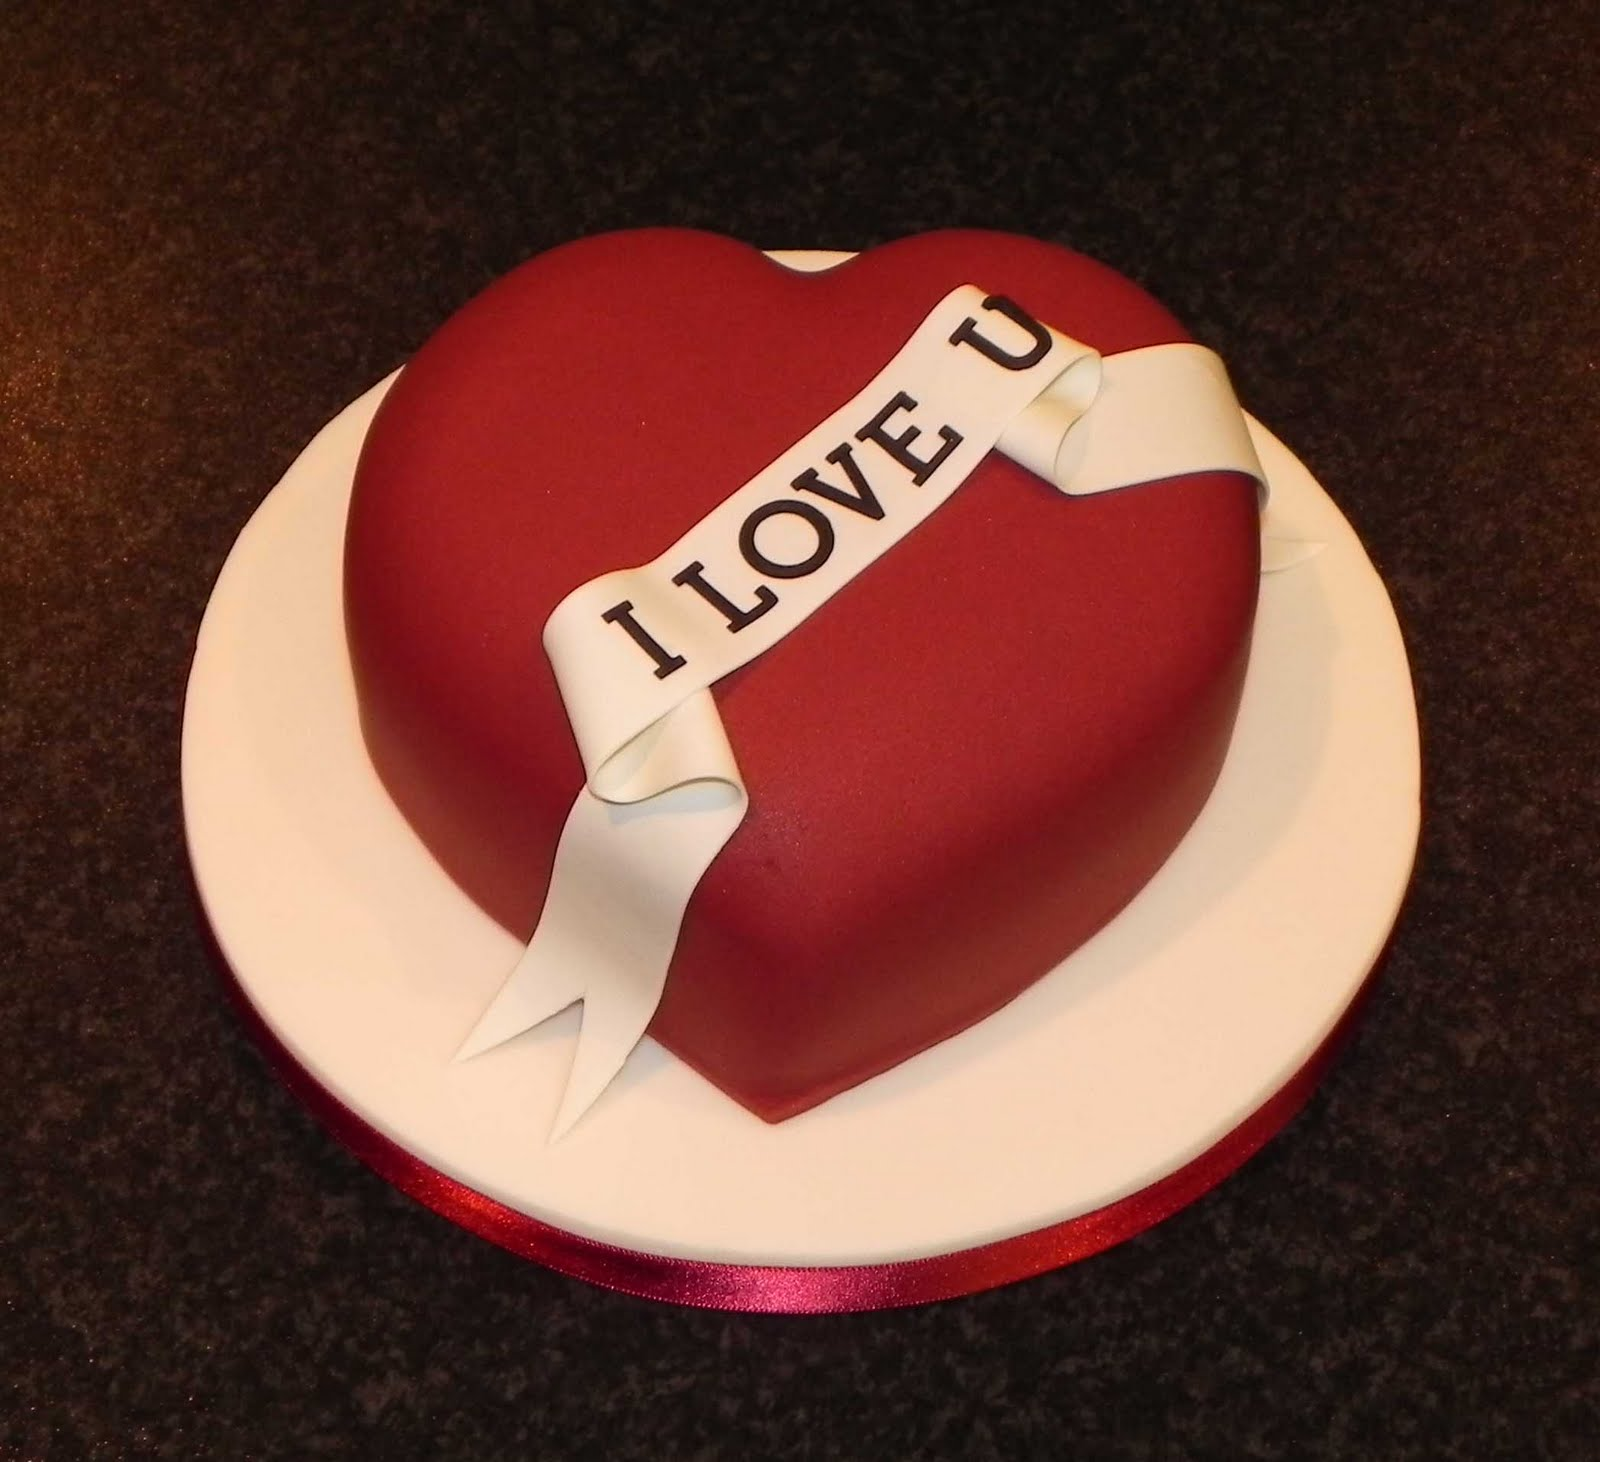 Cake Design Heart Shape : Cake by Lisa Price: Heart shaped cake for Valentines day